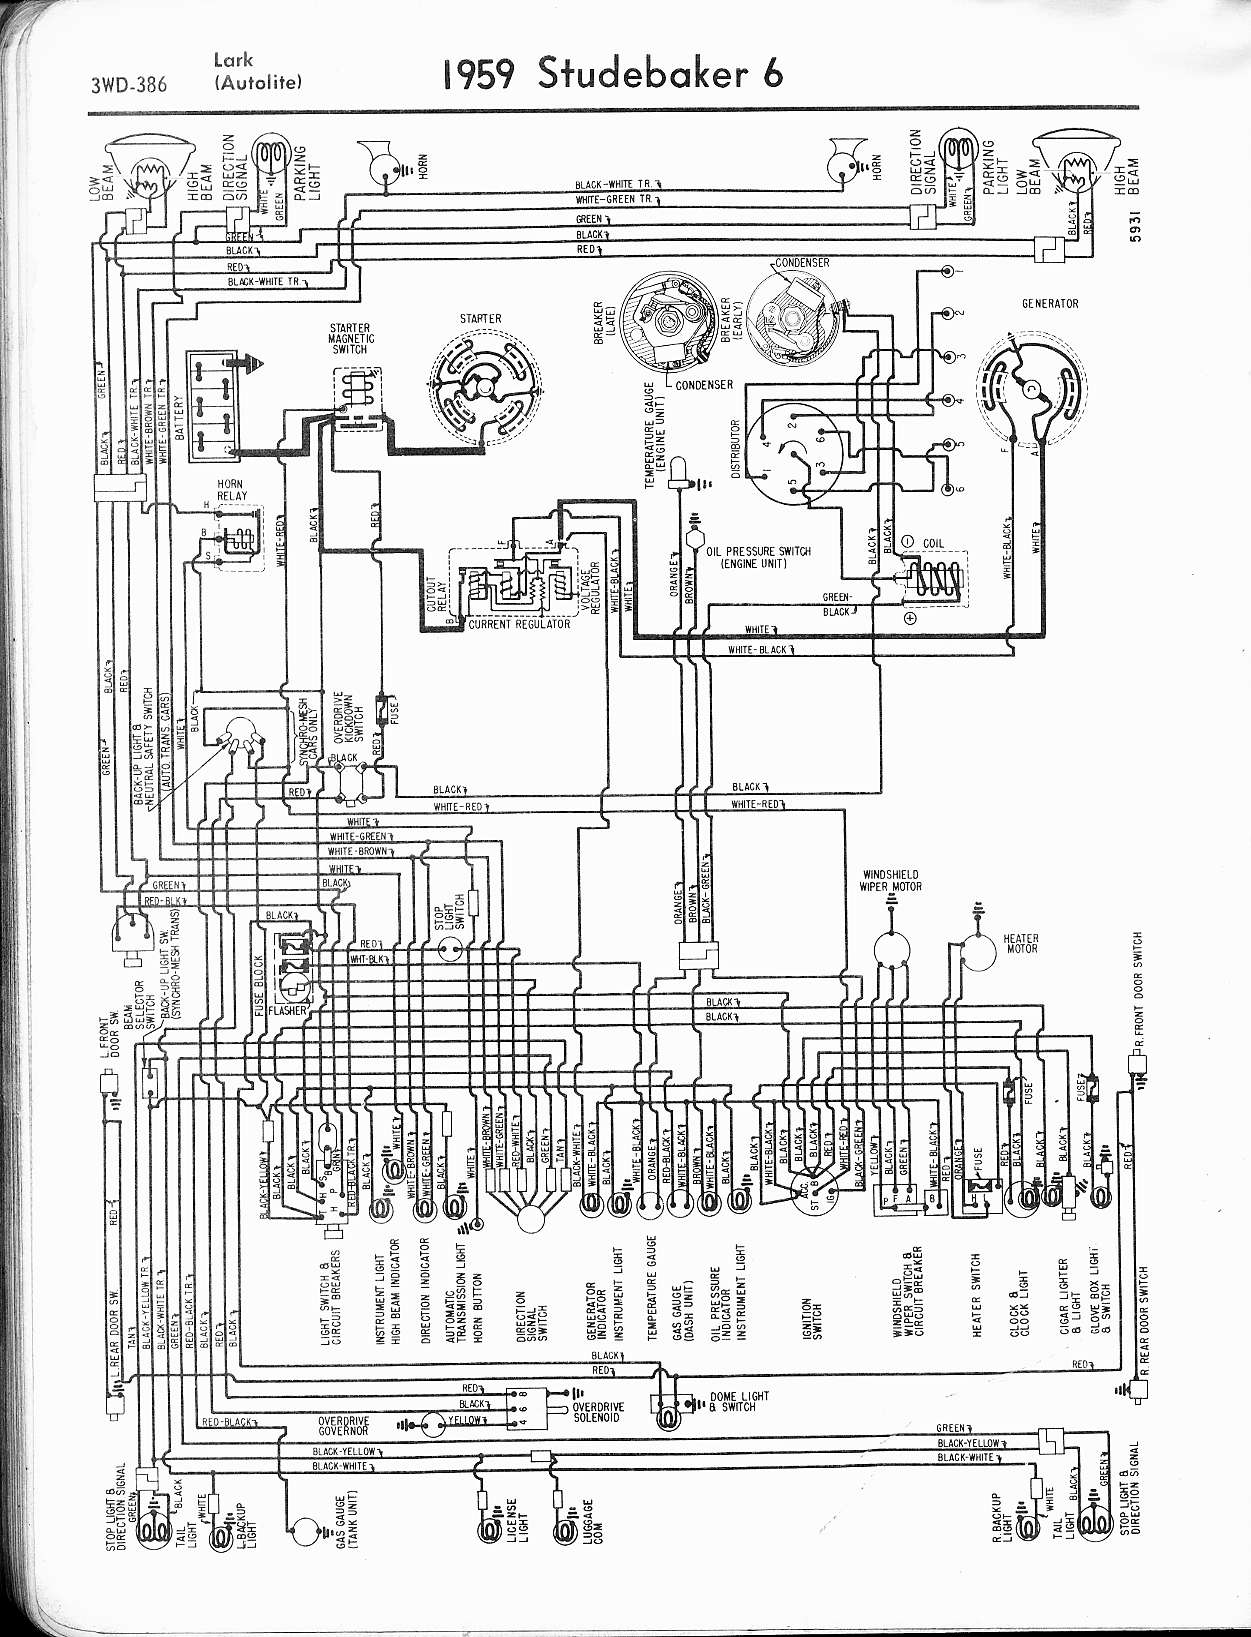 Studebaker wiring diagrams the old car manual project 1959 6 cyl lark autolite cheapraybanclubmaster